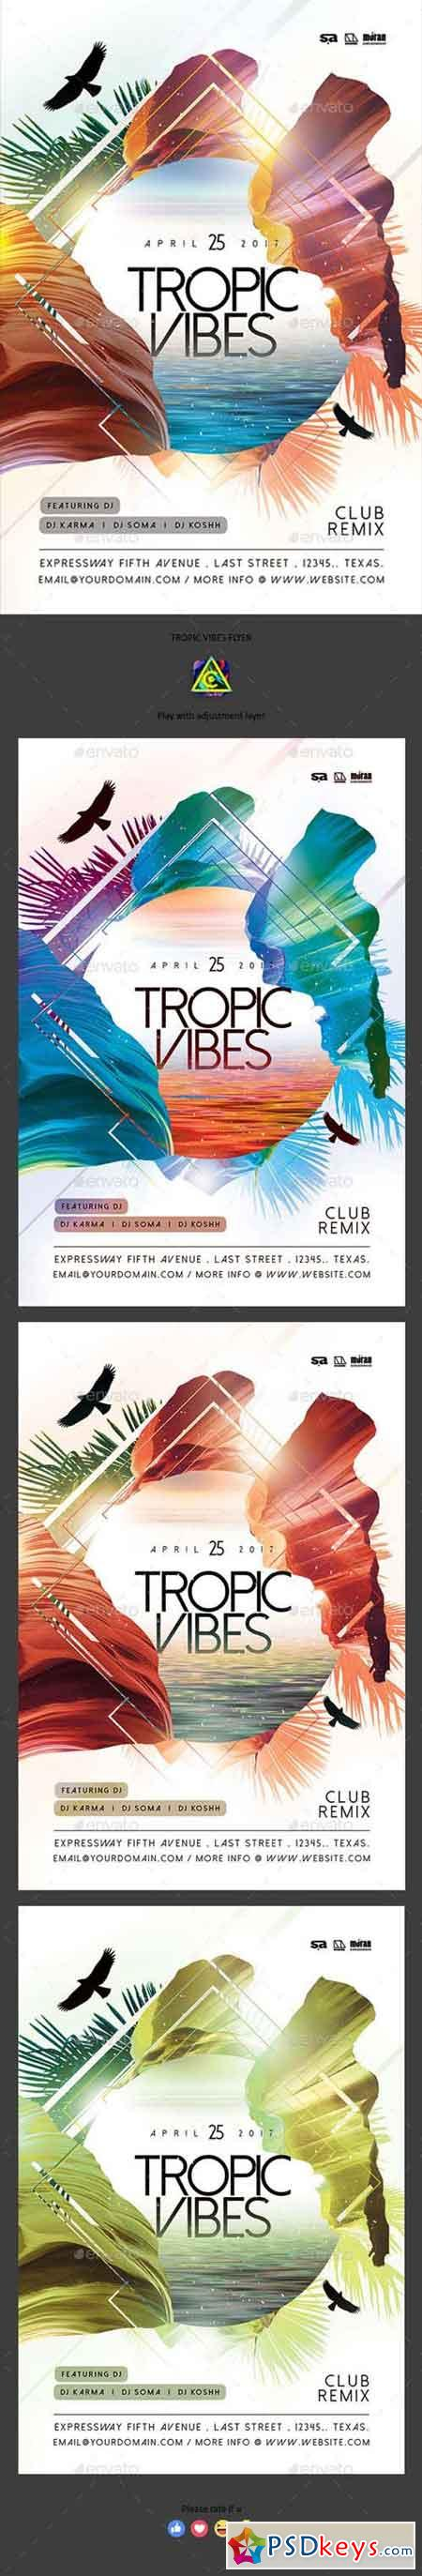 Tropic Vibes Flyer 19956747